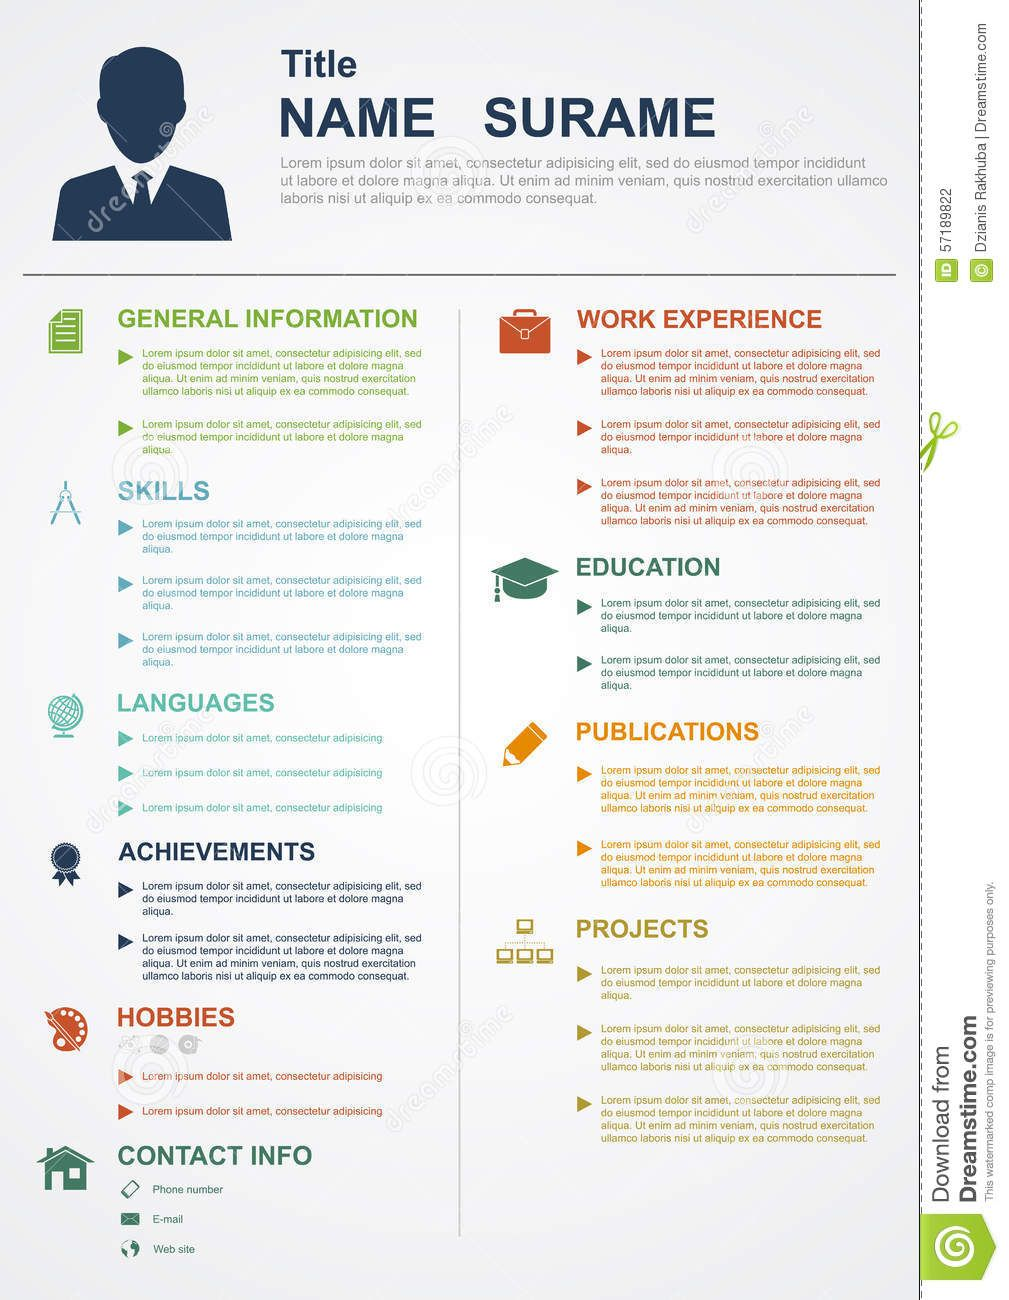 Pin by Meg Evans on Resumes Infographic resume, Graphic